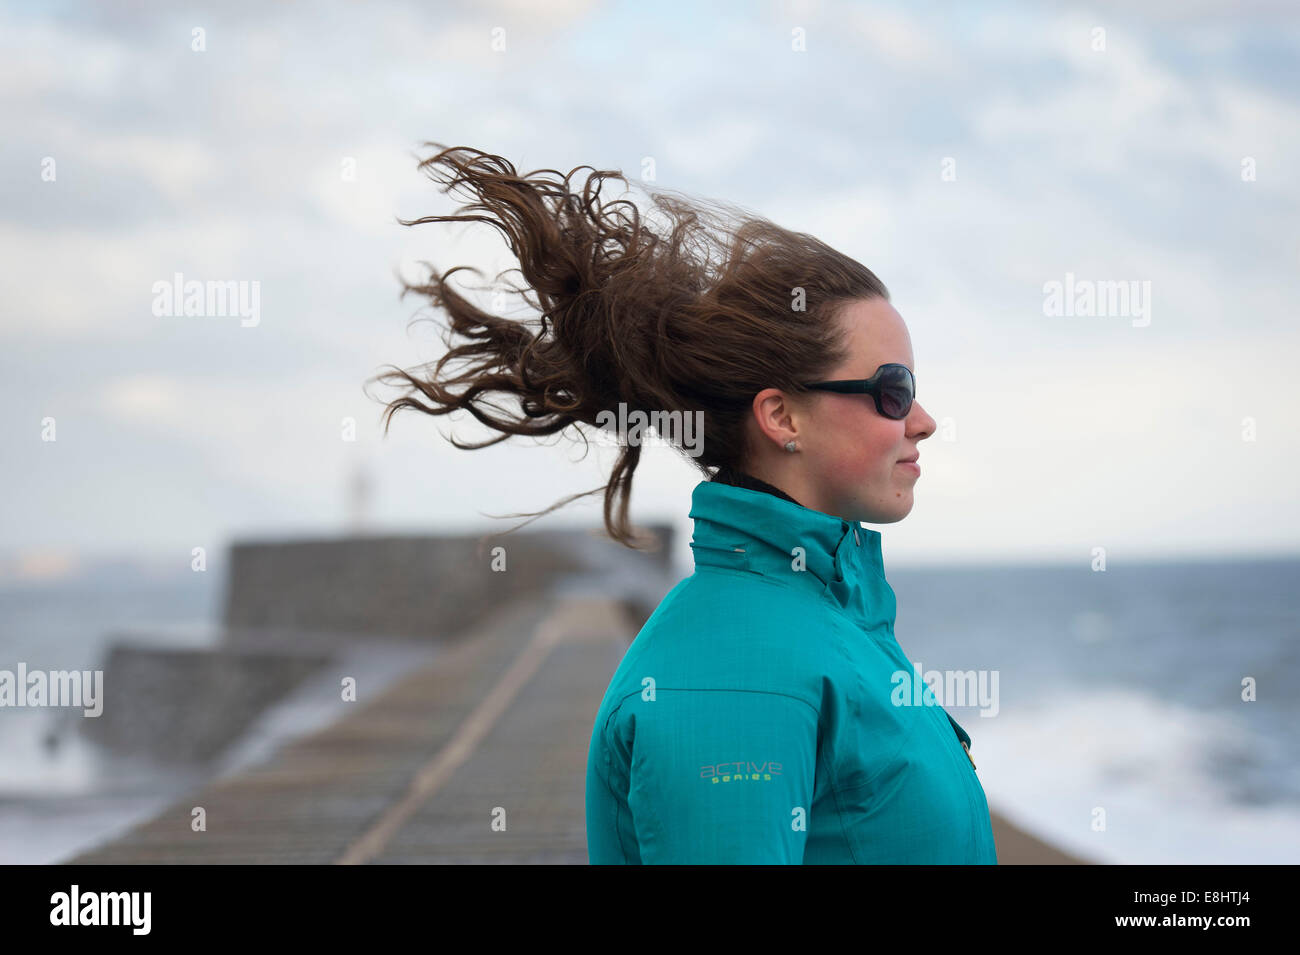 A young female girl stands facing into the wind with her hair blowing behind her. - Stock Image